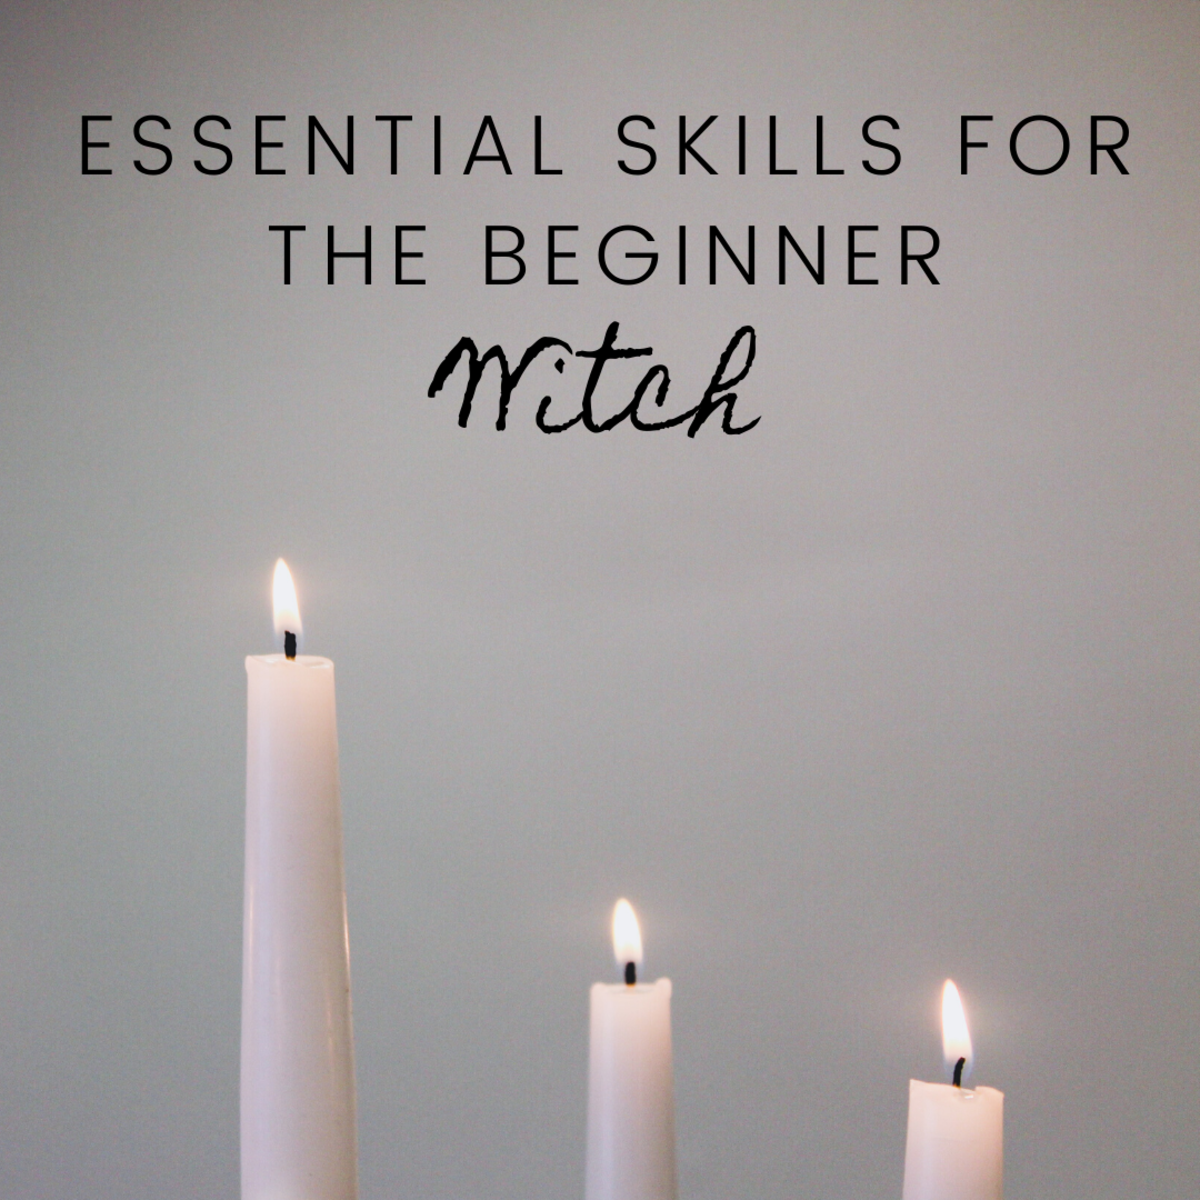 Essential Skills for the Beginner Witch